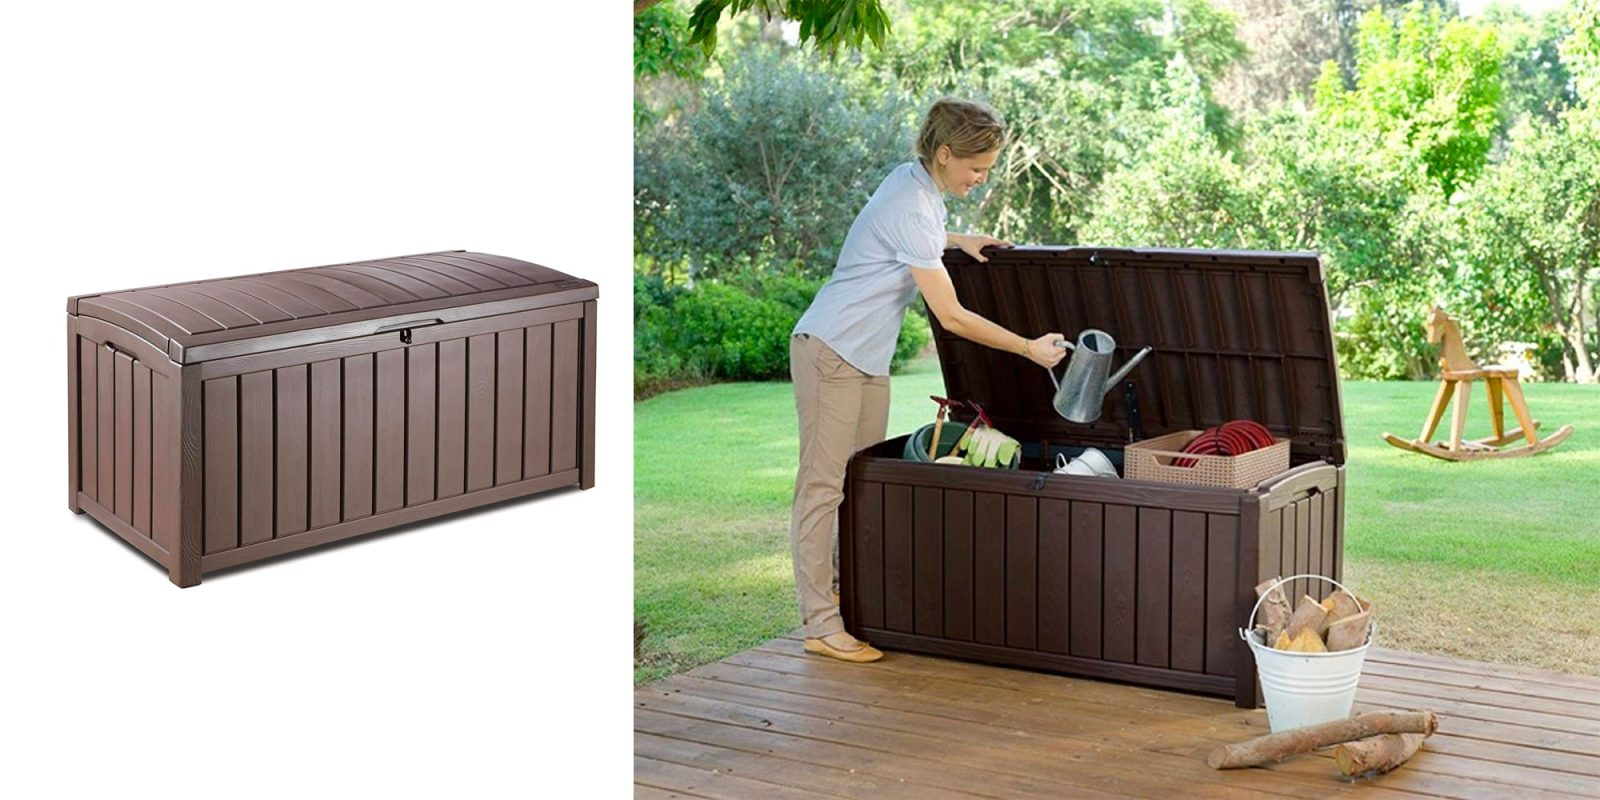 Keter's deck storage container is back at its 2-year low: $70 (Reg. $90)